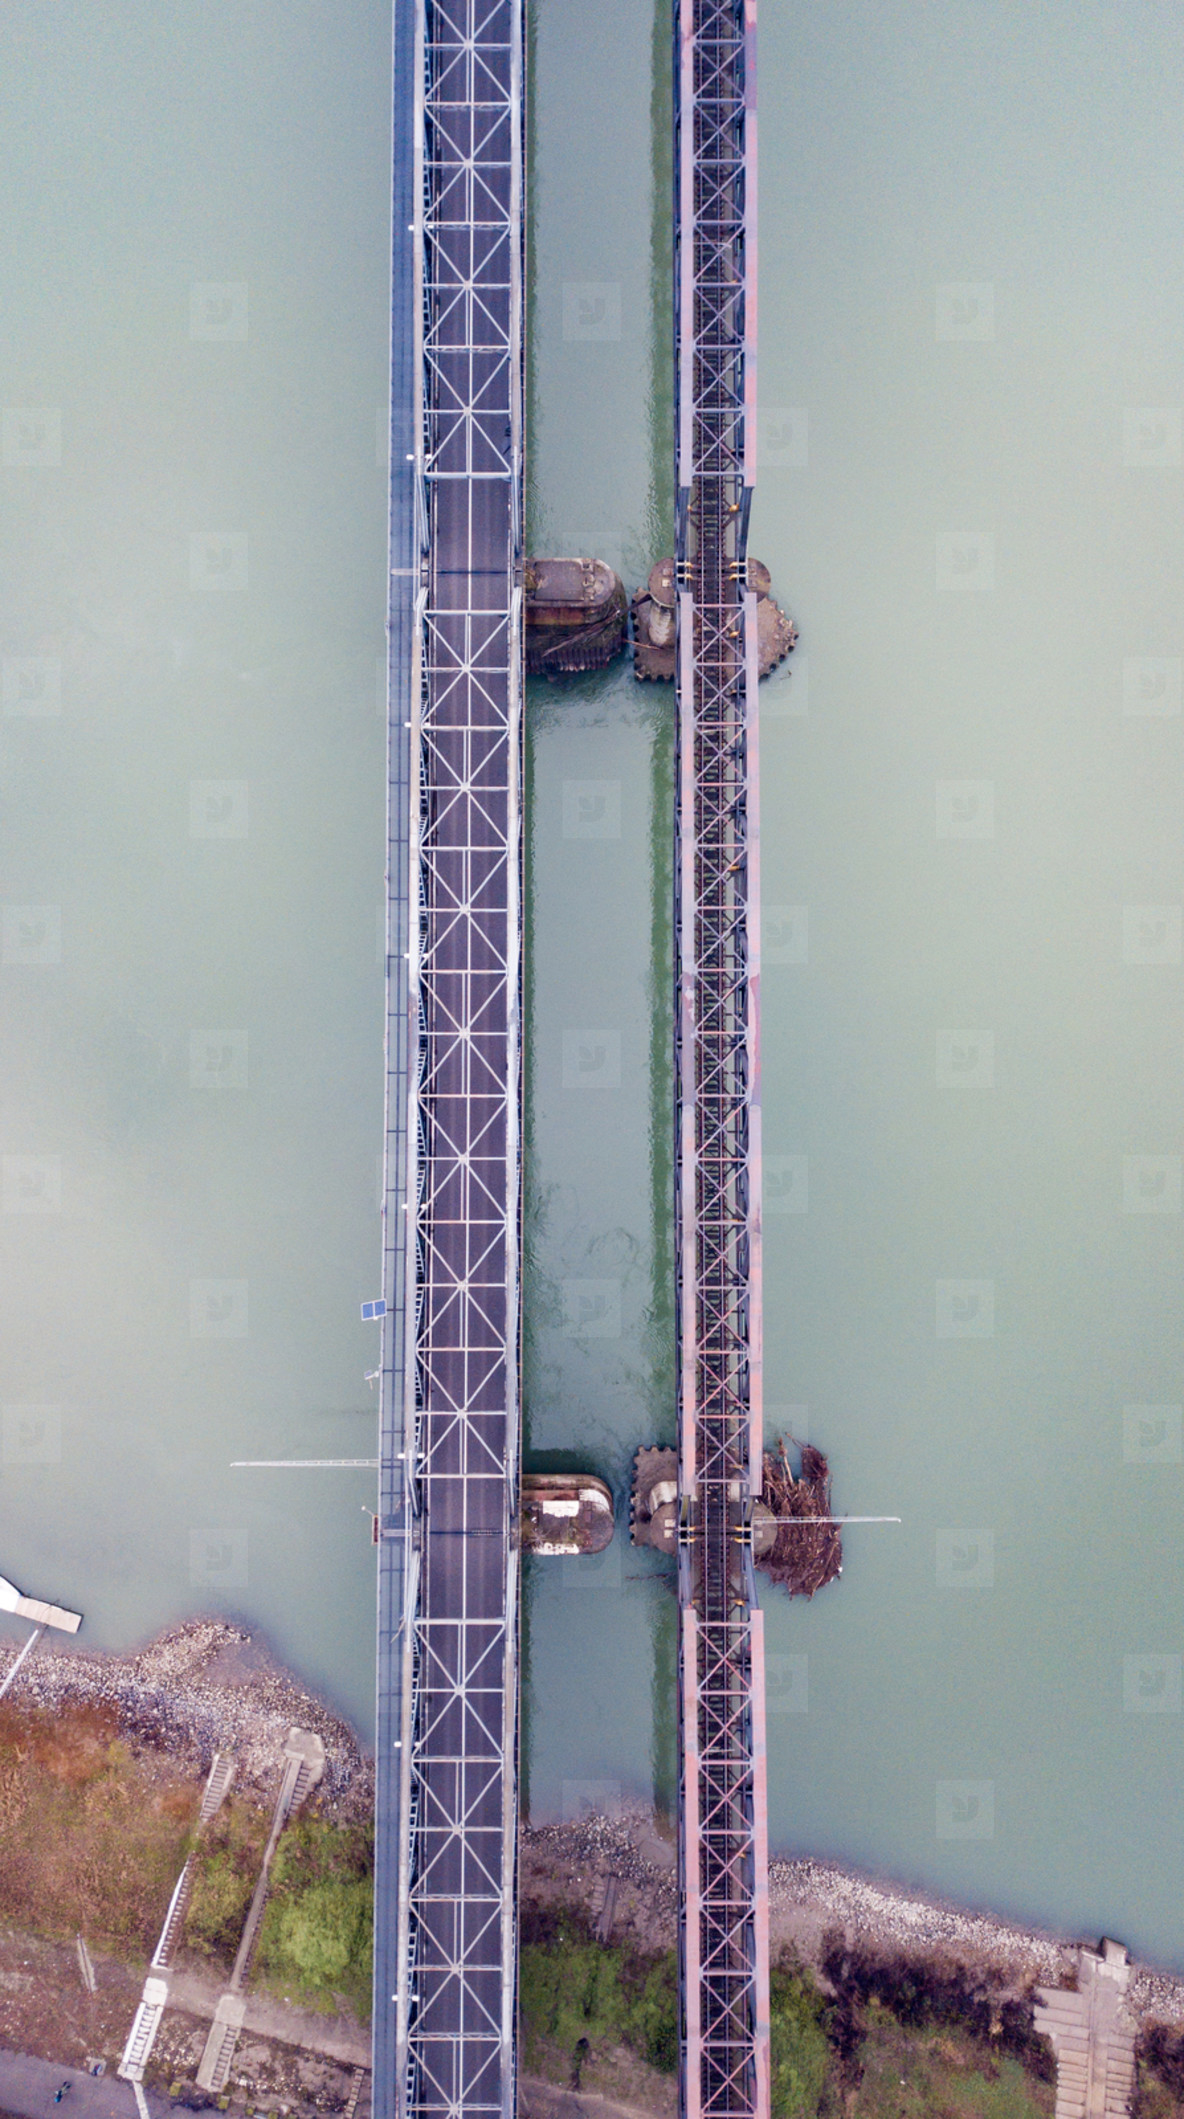 Aerial view of a bridge